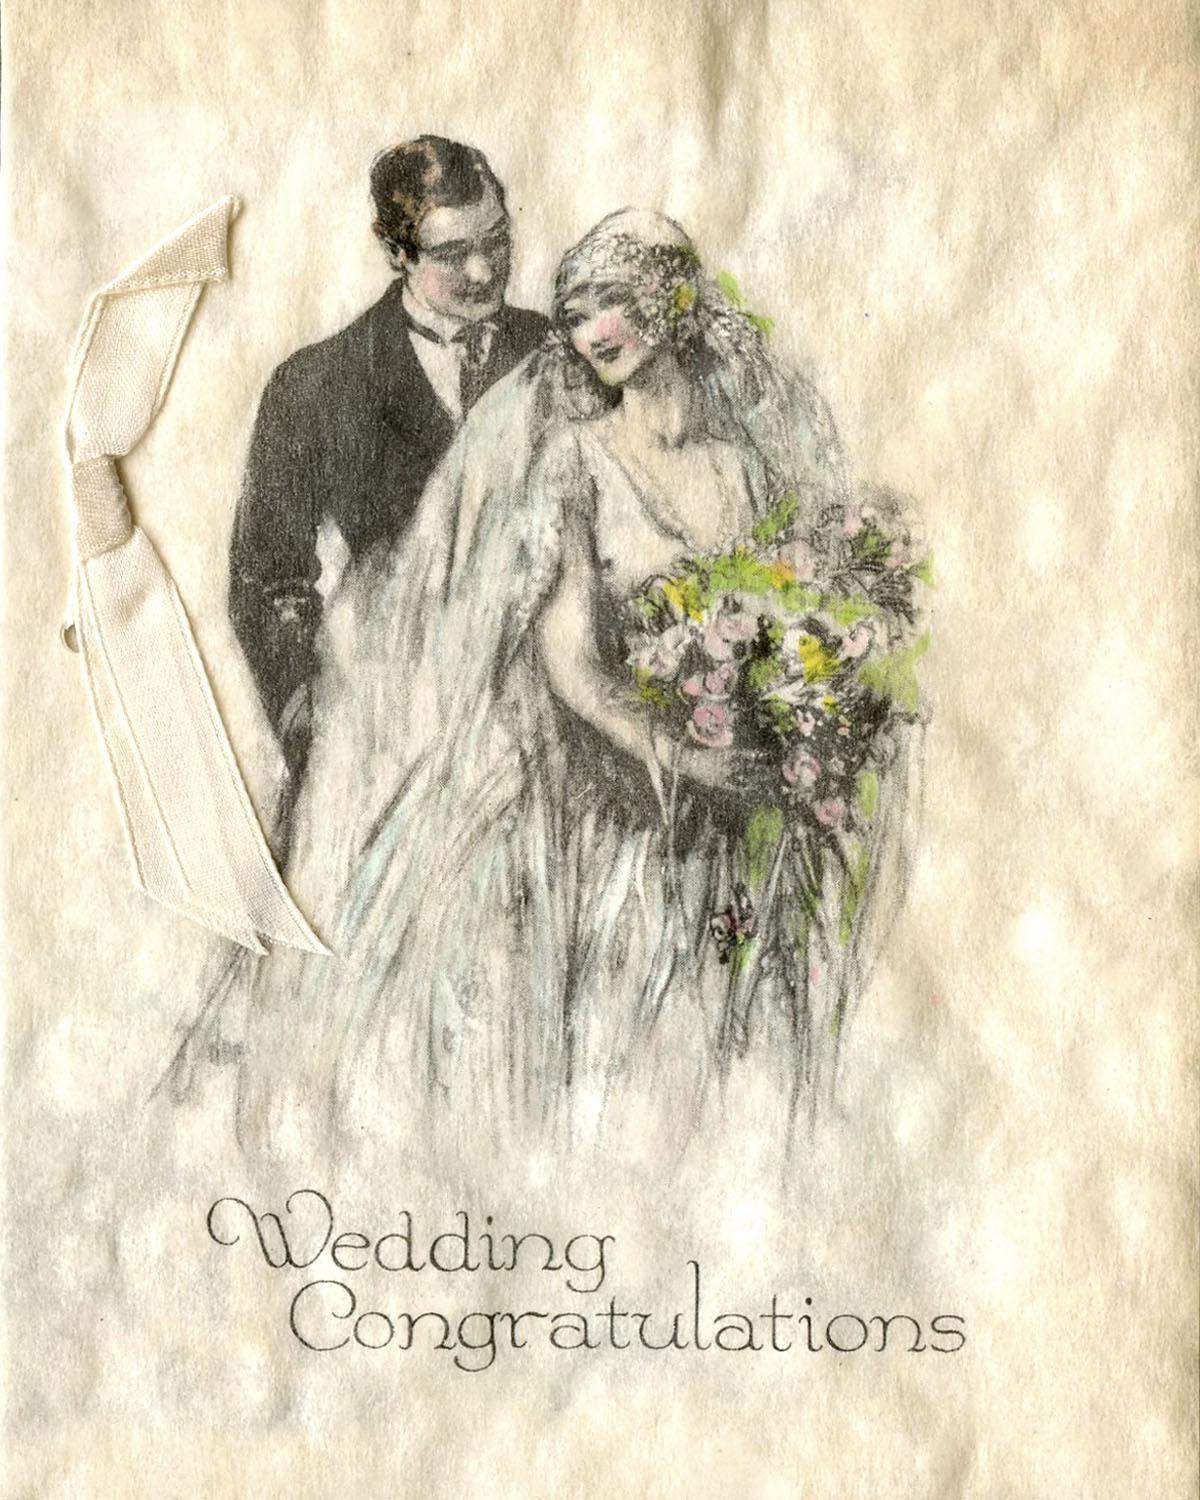 How to scrapbook wedding cards - But In Honor Of The Wonderful Institution Of Marriage I Present A Few Of The Wedding Greetings For The New Mr And Mrs James Ingle